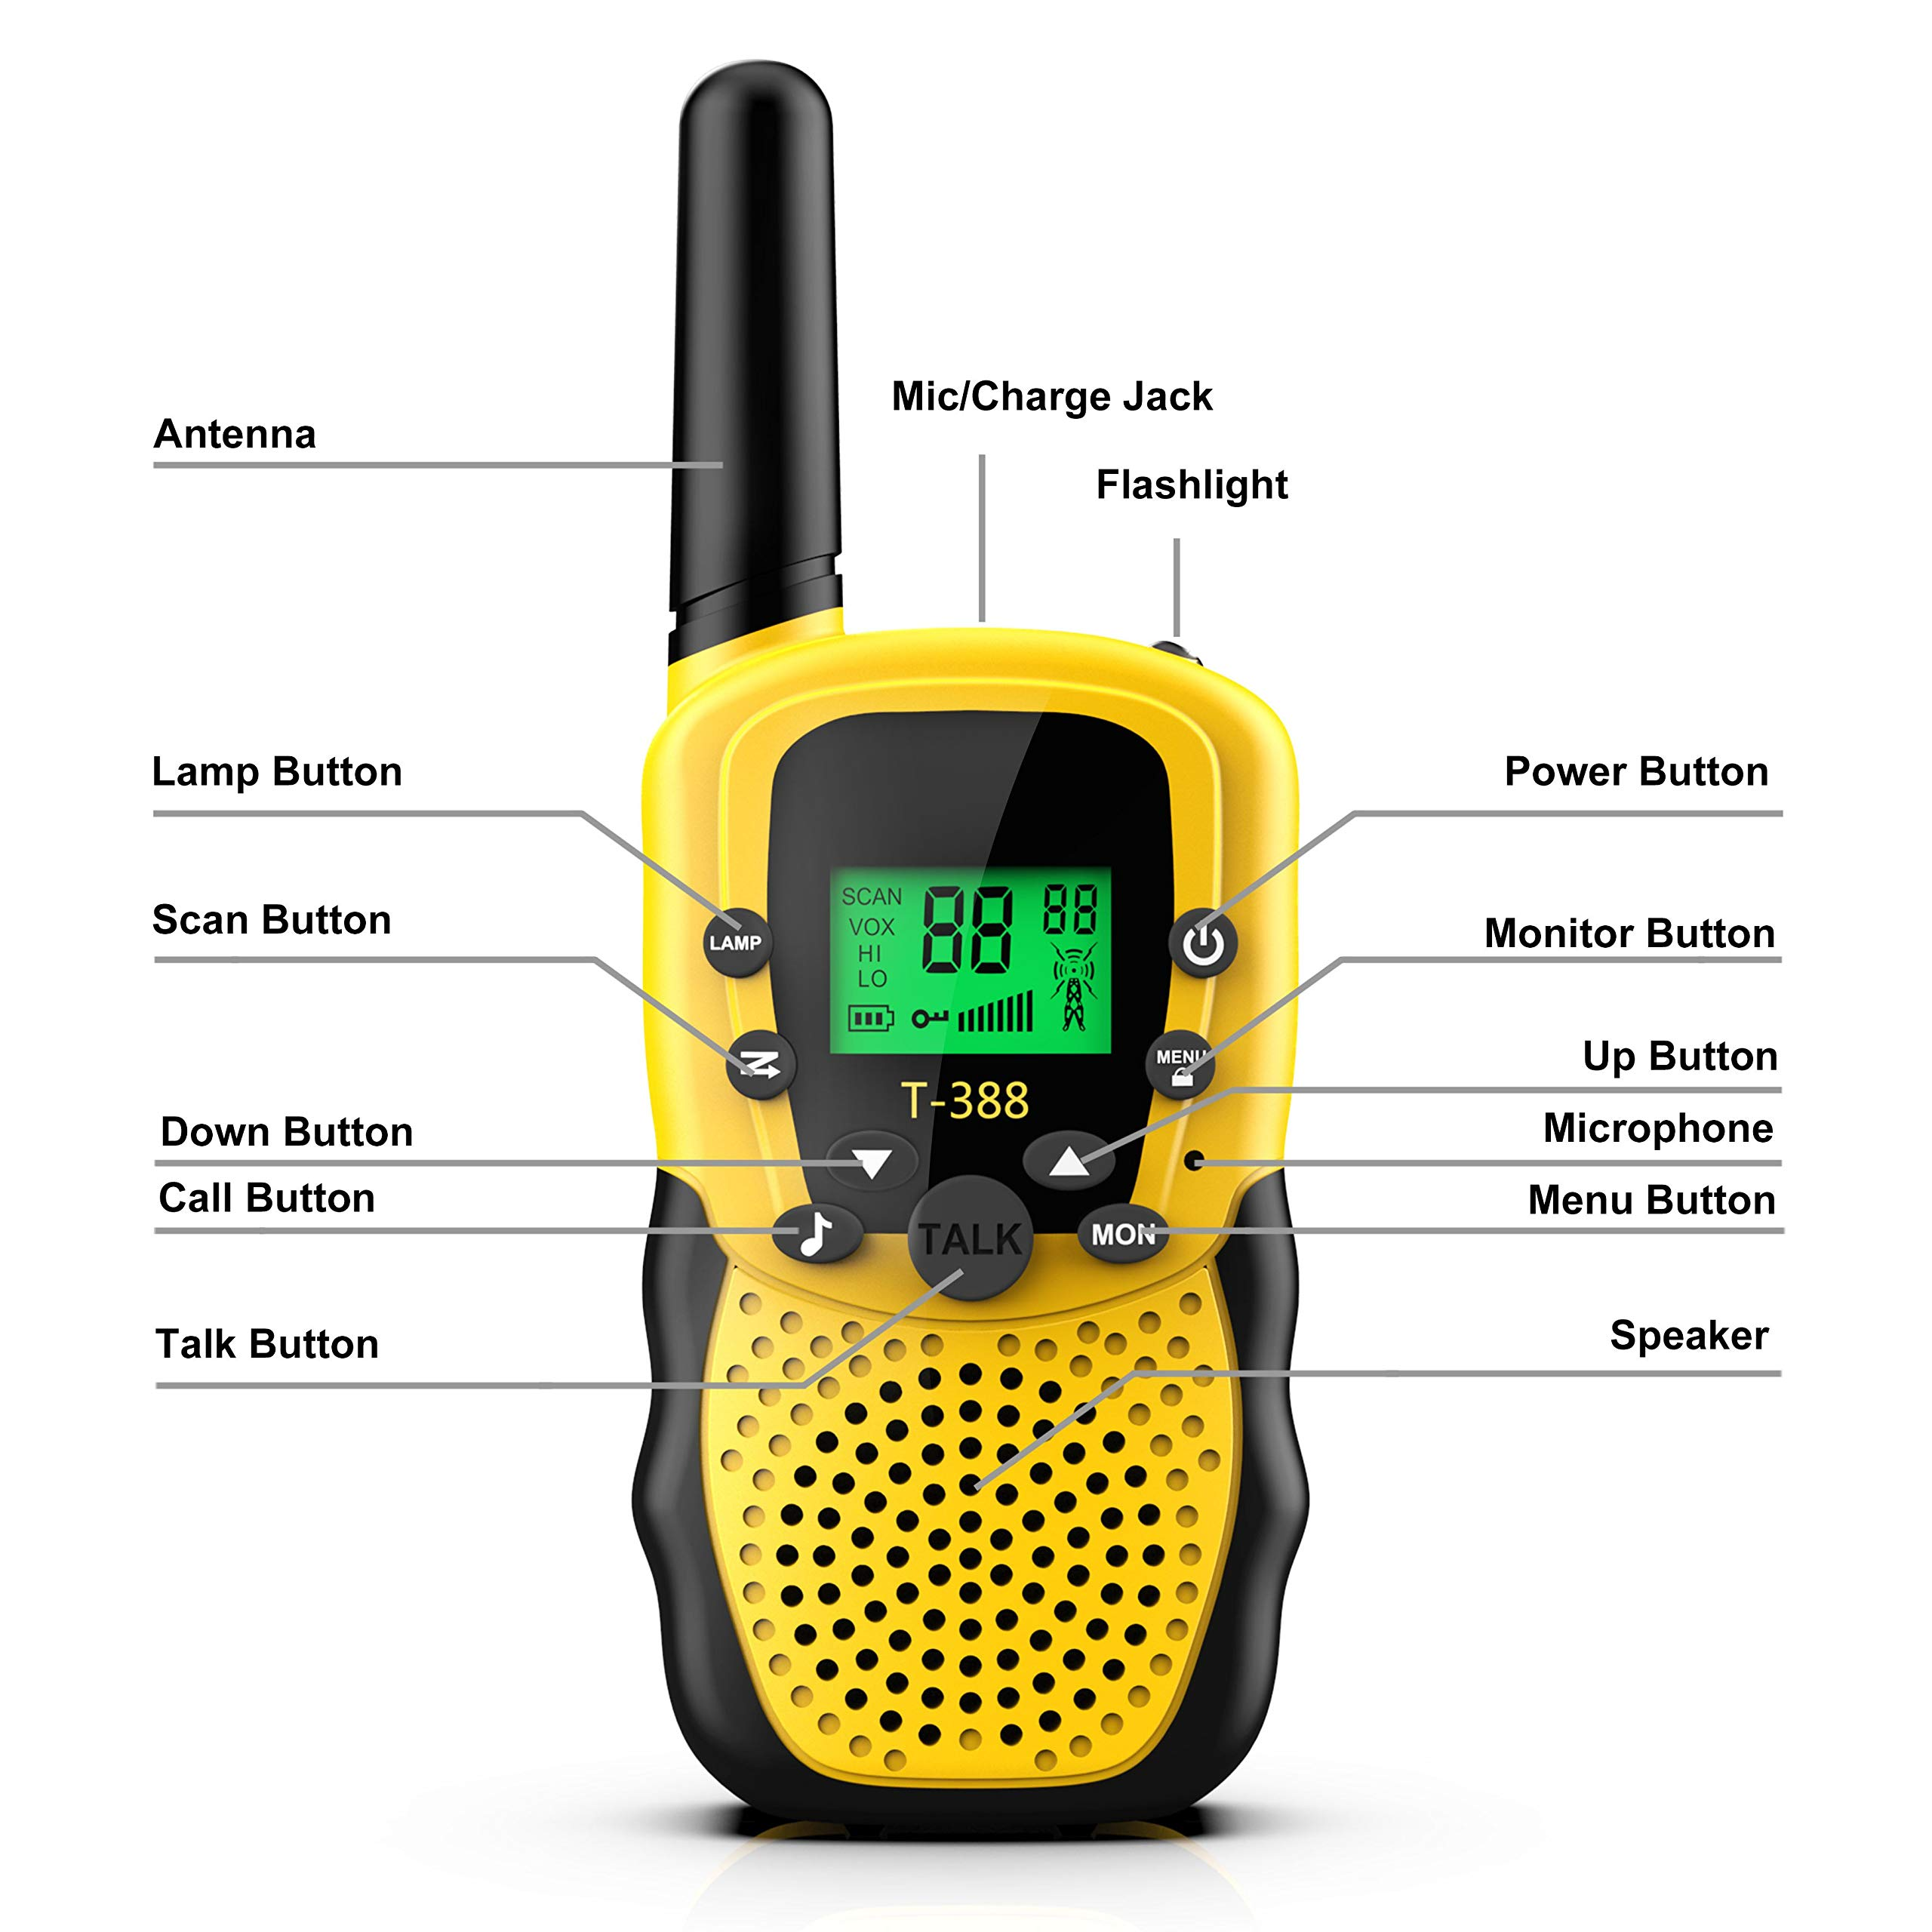 Walkies Talkies for Kids, 22 Channels FRS/GMRS UHF Two Way Radios 4 Miles Handheld Mini Kids Walkie Talkies for Kids Best Gifts Kids Toys Built in Flashlight by JimBest1970 (Image #2)